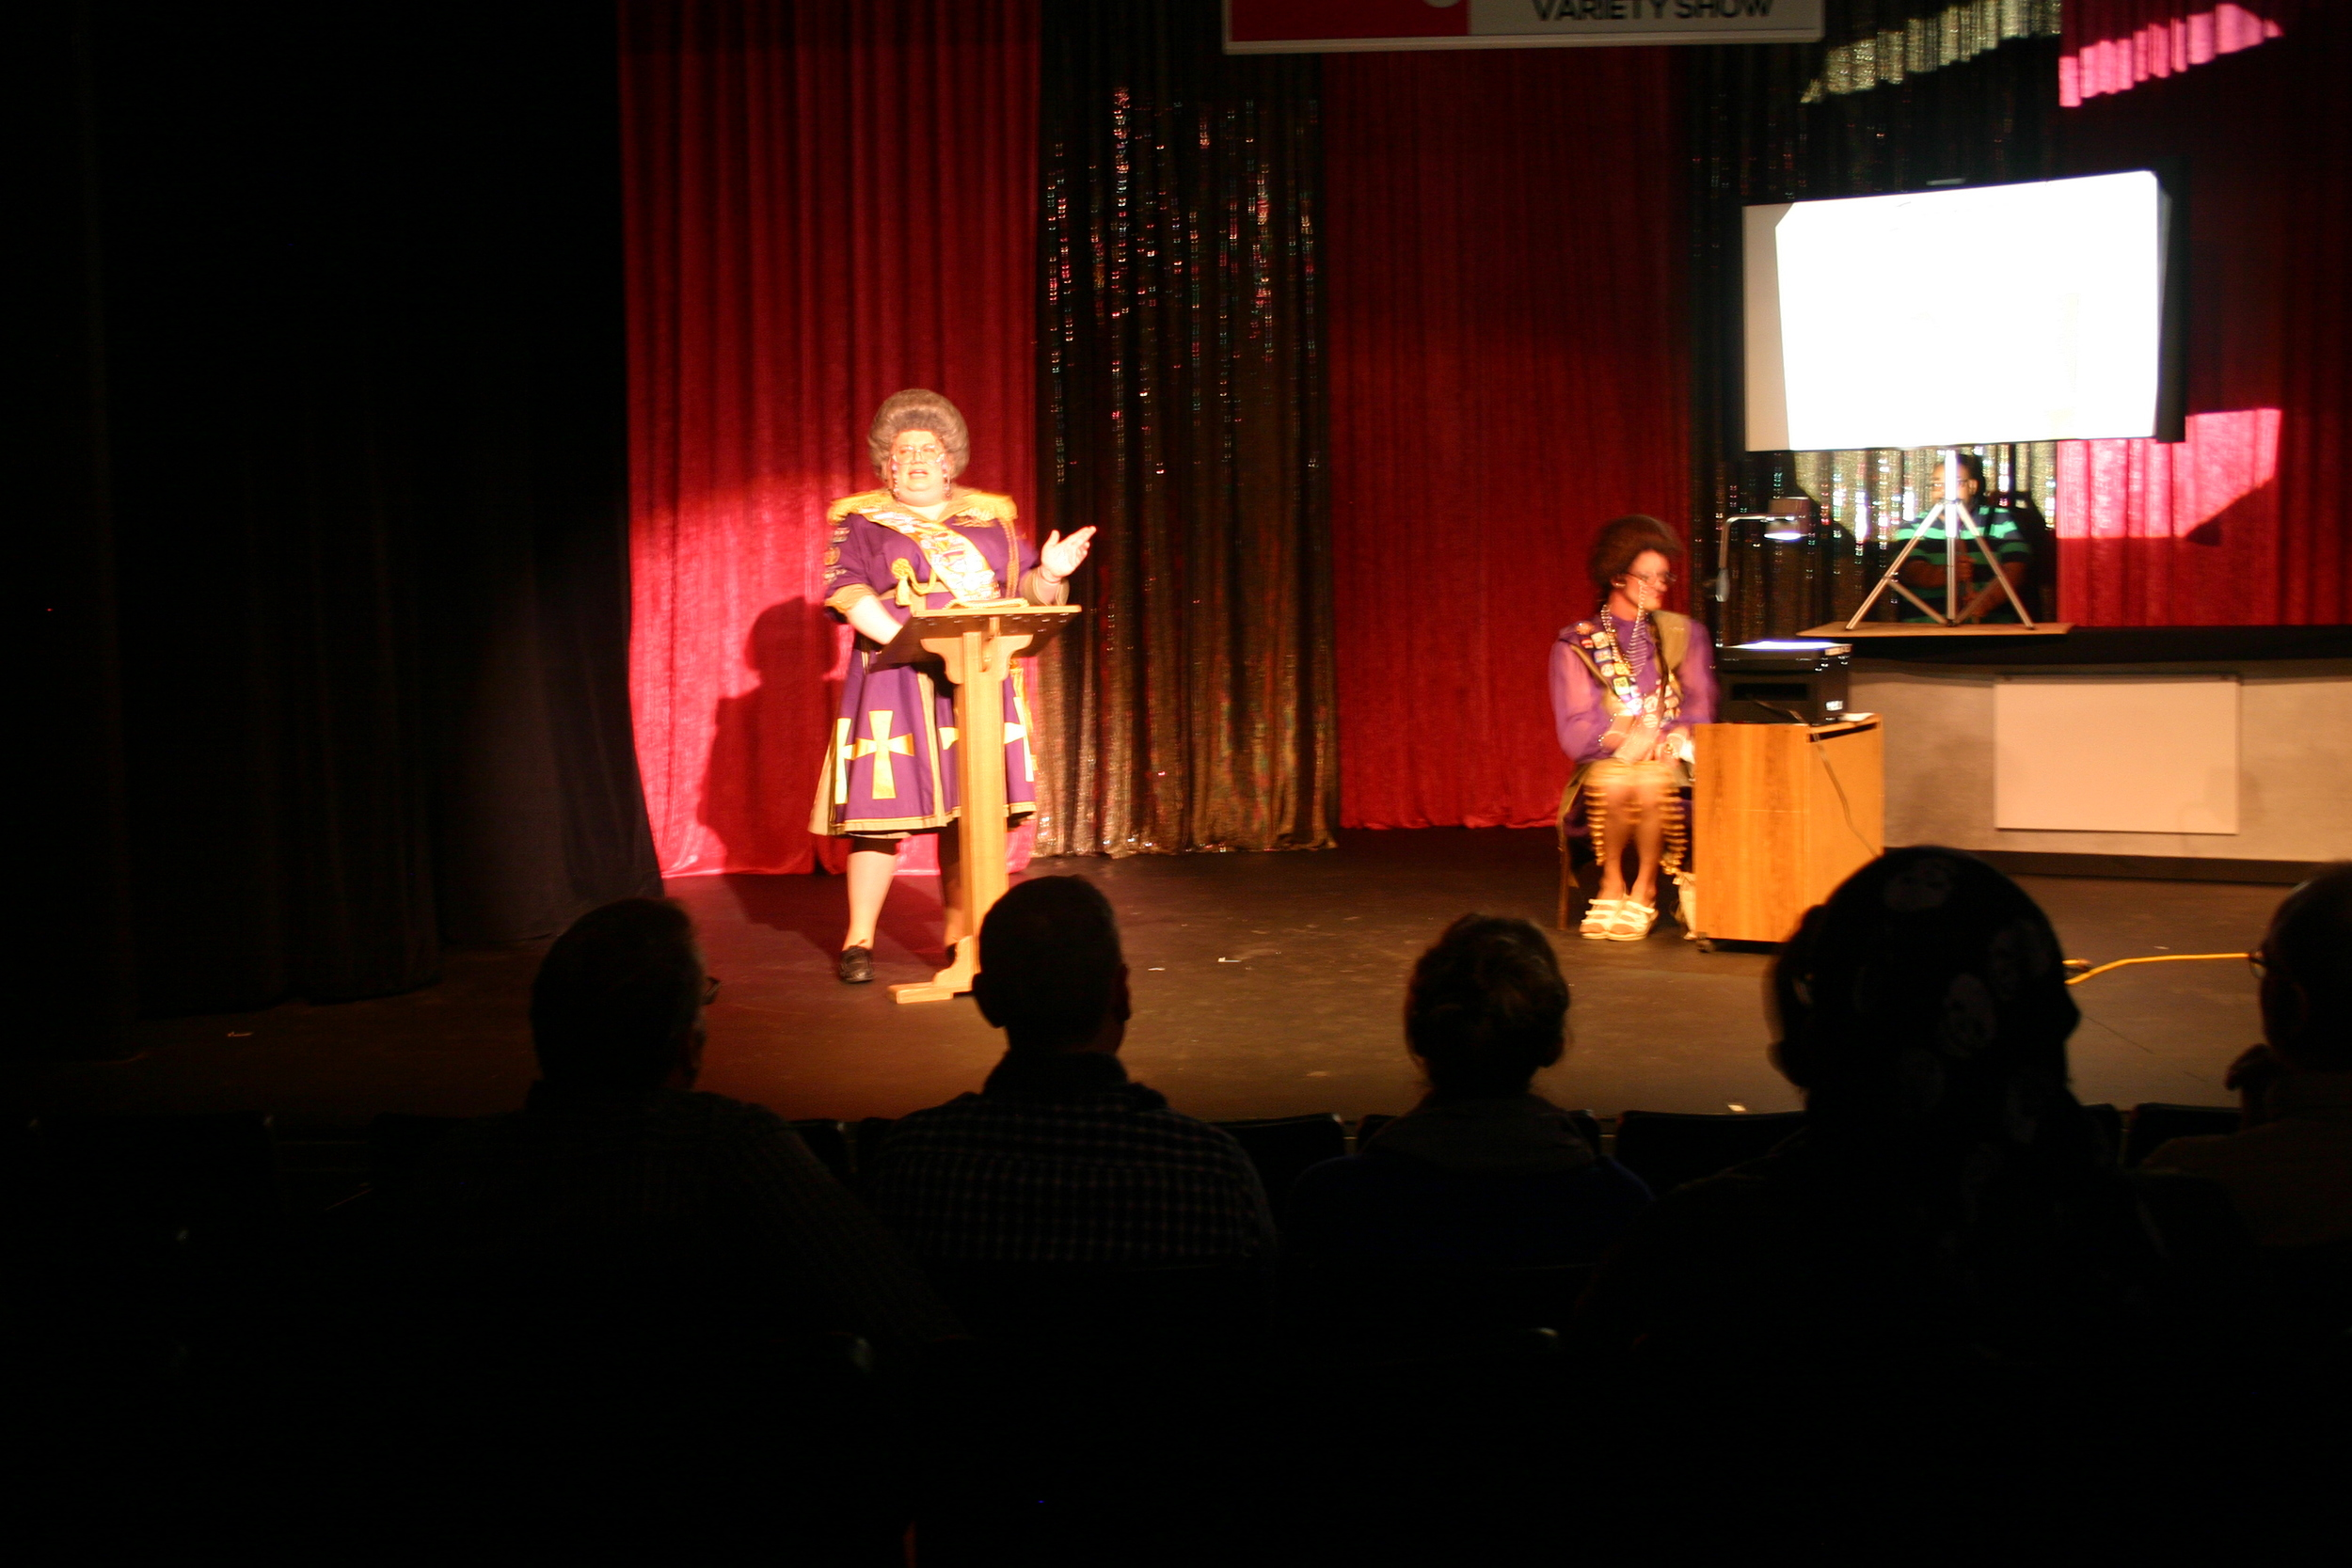 Sister Myotis and her sidekick Thelma     DragNificent Variety Show 2015    Copyright 2015 Out901.com. All rights reserved. This material may not be published, broadcast, rewritten, or redistributed.    Picture by Whitney Hardy